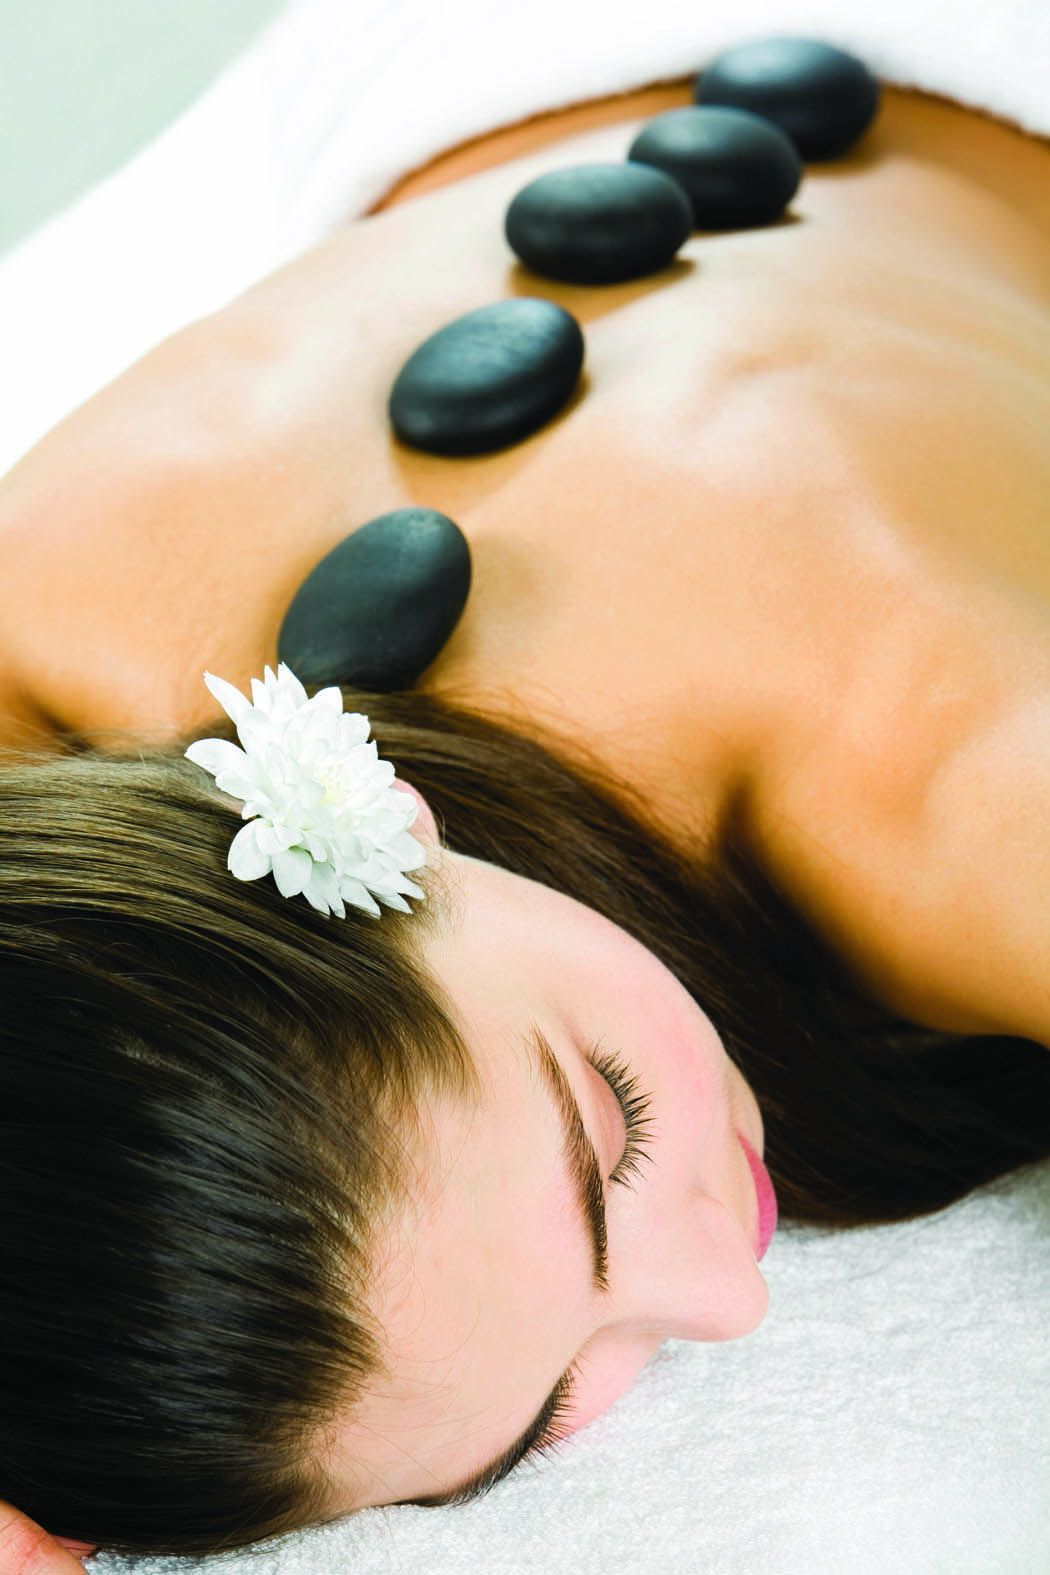 stone massage therapy b28 What is hot stone massage hot stone massage therapy is an age-old treatment with the addition of heat for a modern twist water-heated, smooth stones are placed strategically on the body on key points—with or without pressure—for the ultimate in relaxation and pain relief.